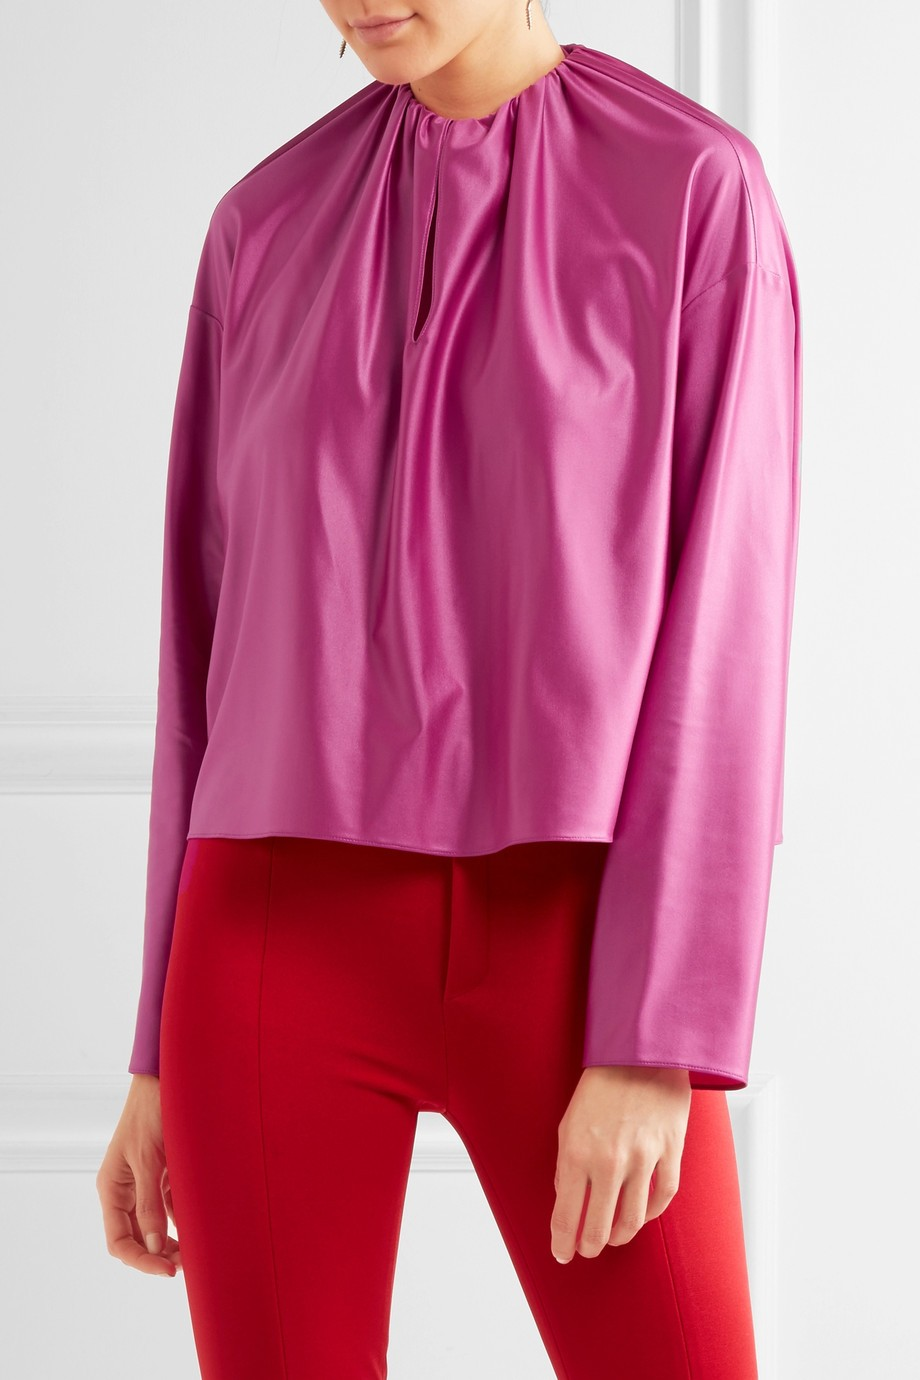 Satin blouse Balenciaga buy Satin blouse Balenciaga internet shop